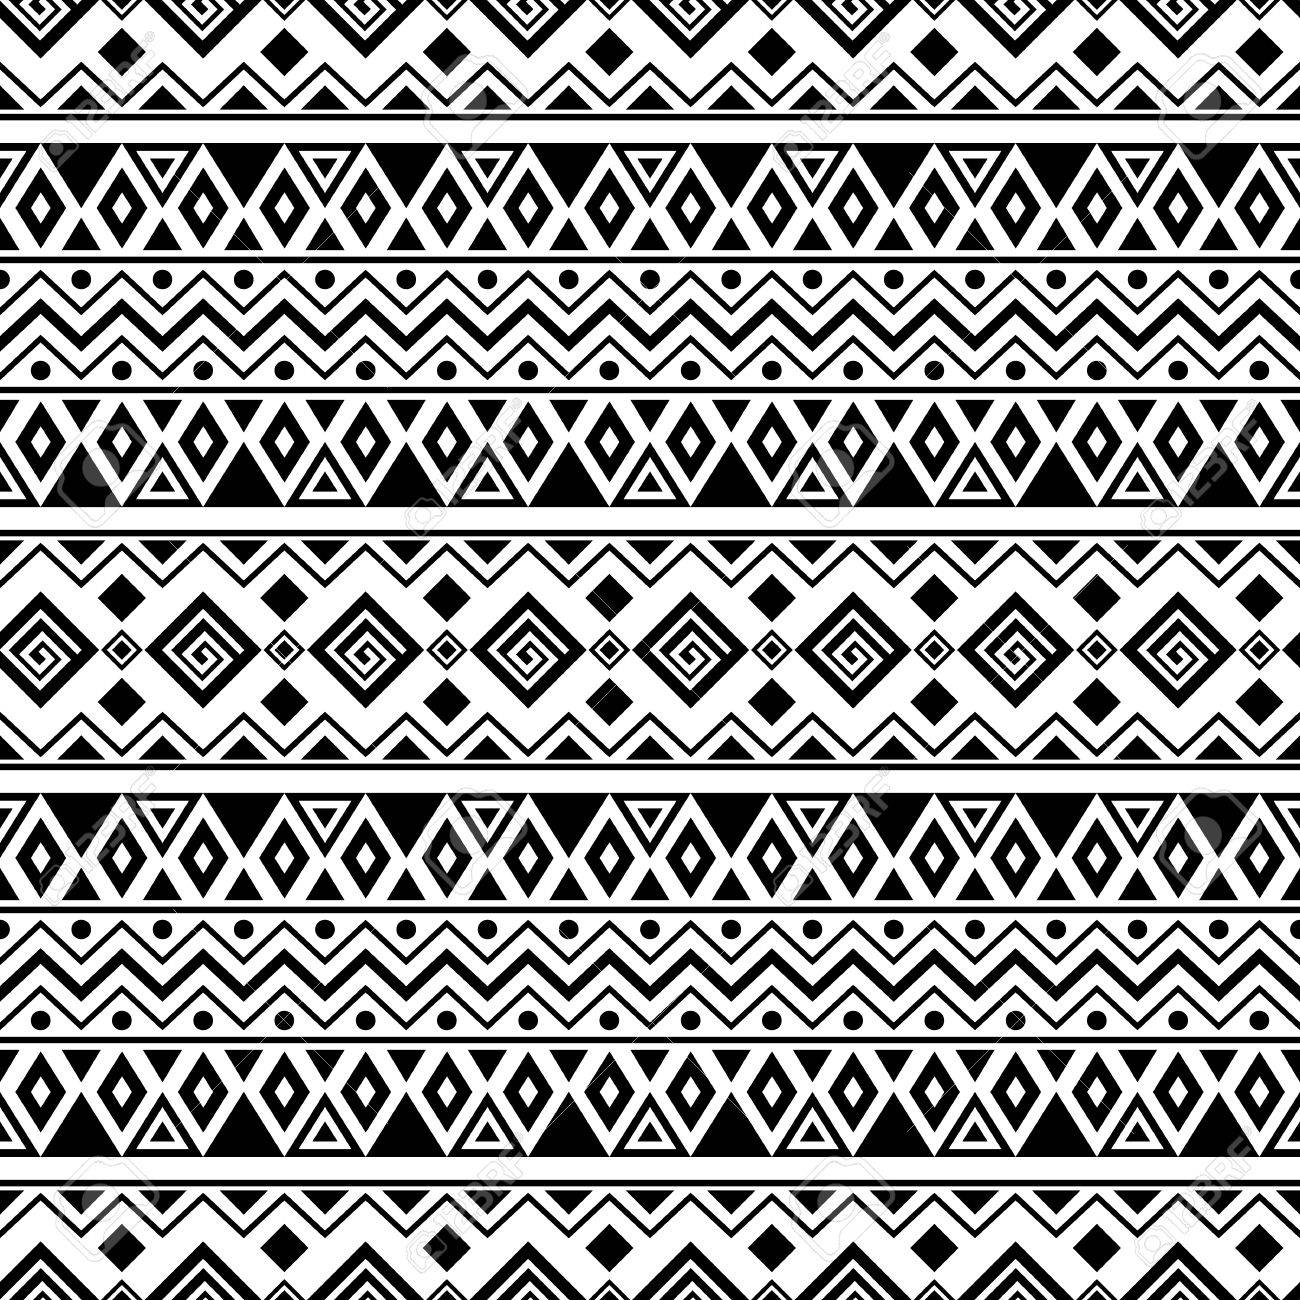 Black And White Aztec Seamless Pattern Boho Design Stylized Print Template For Paper